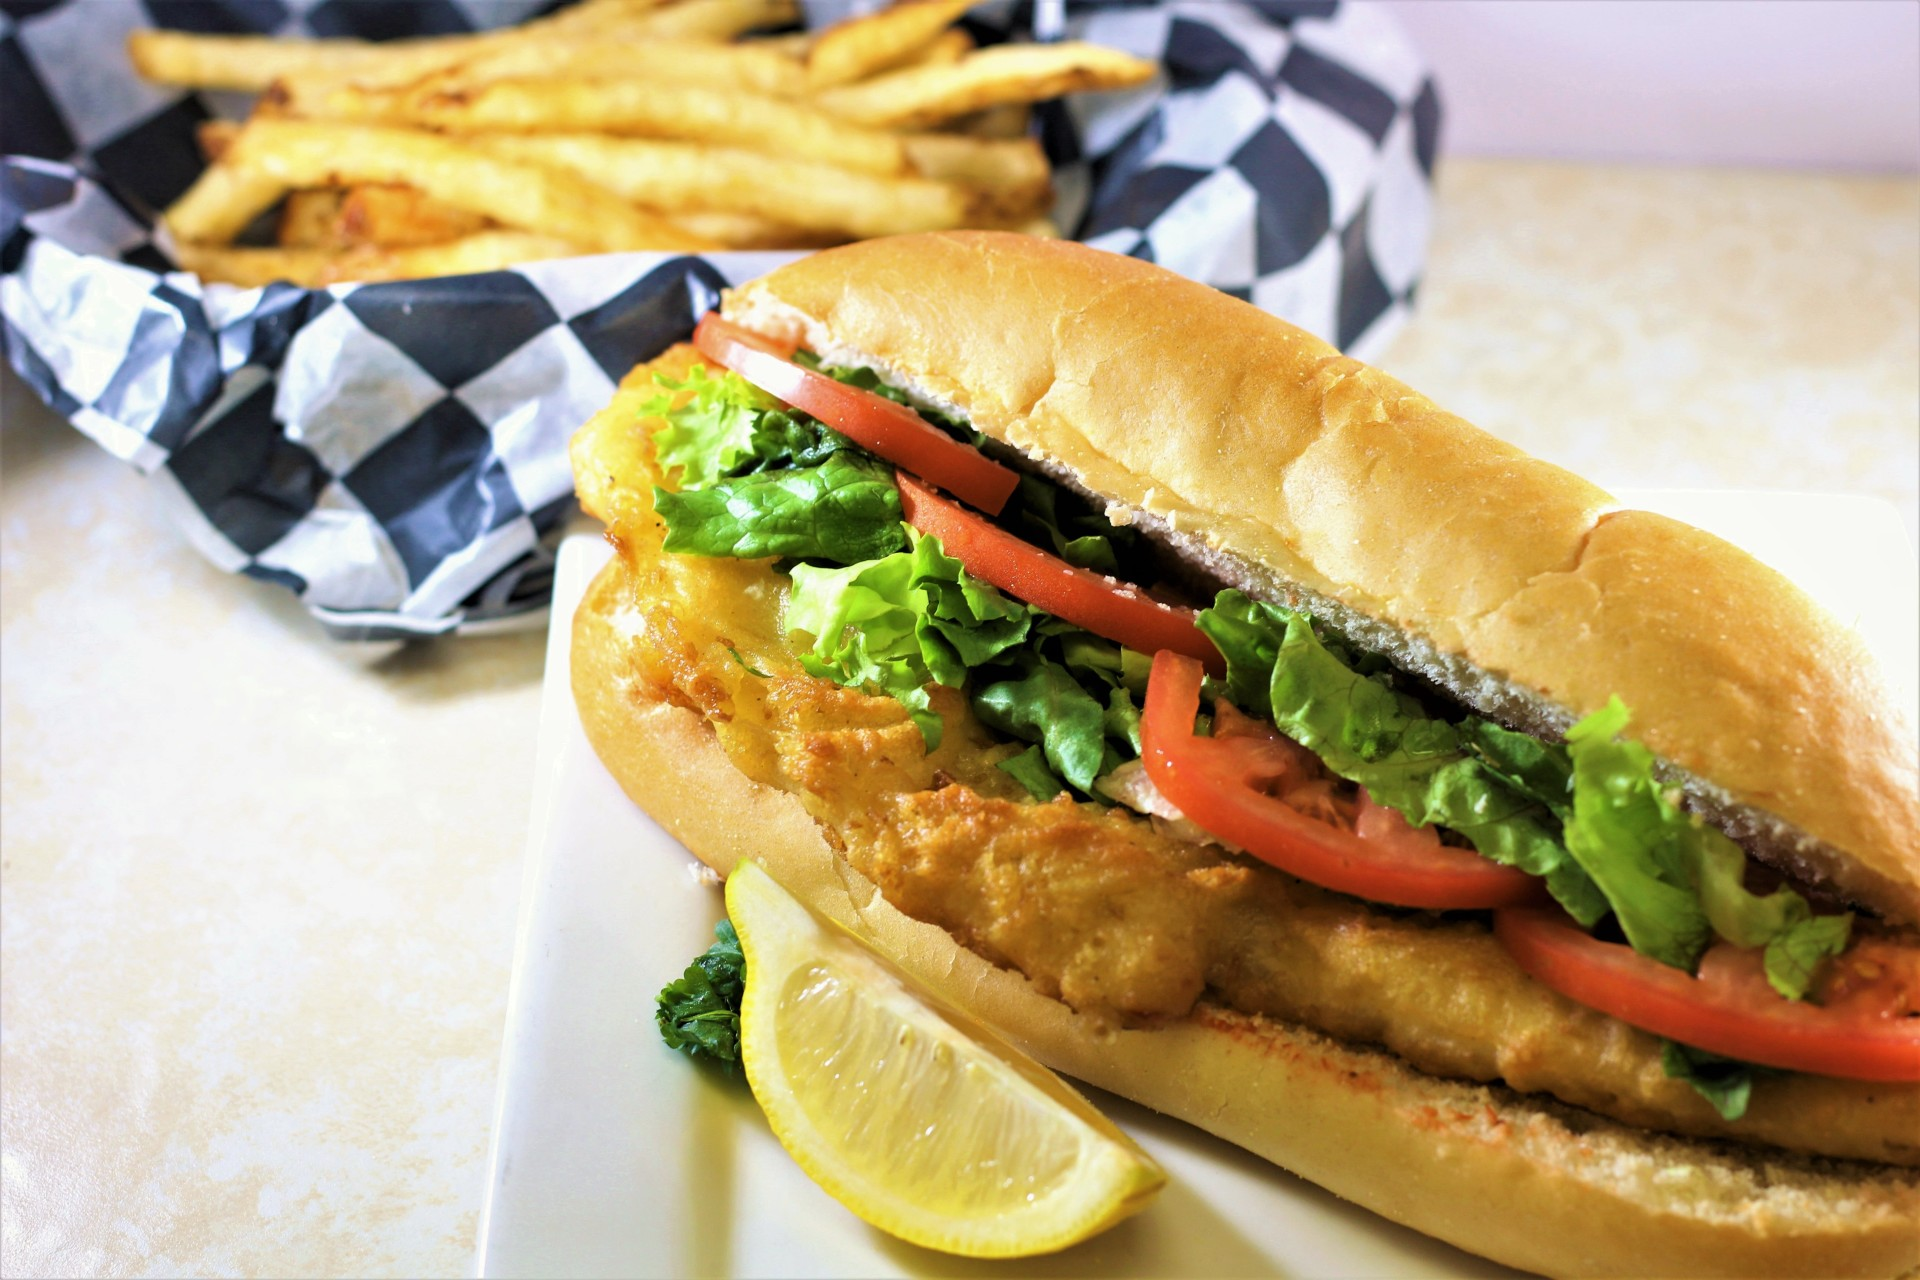 Our Giant Yuengling Beer-Battered Fish Sandwich